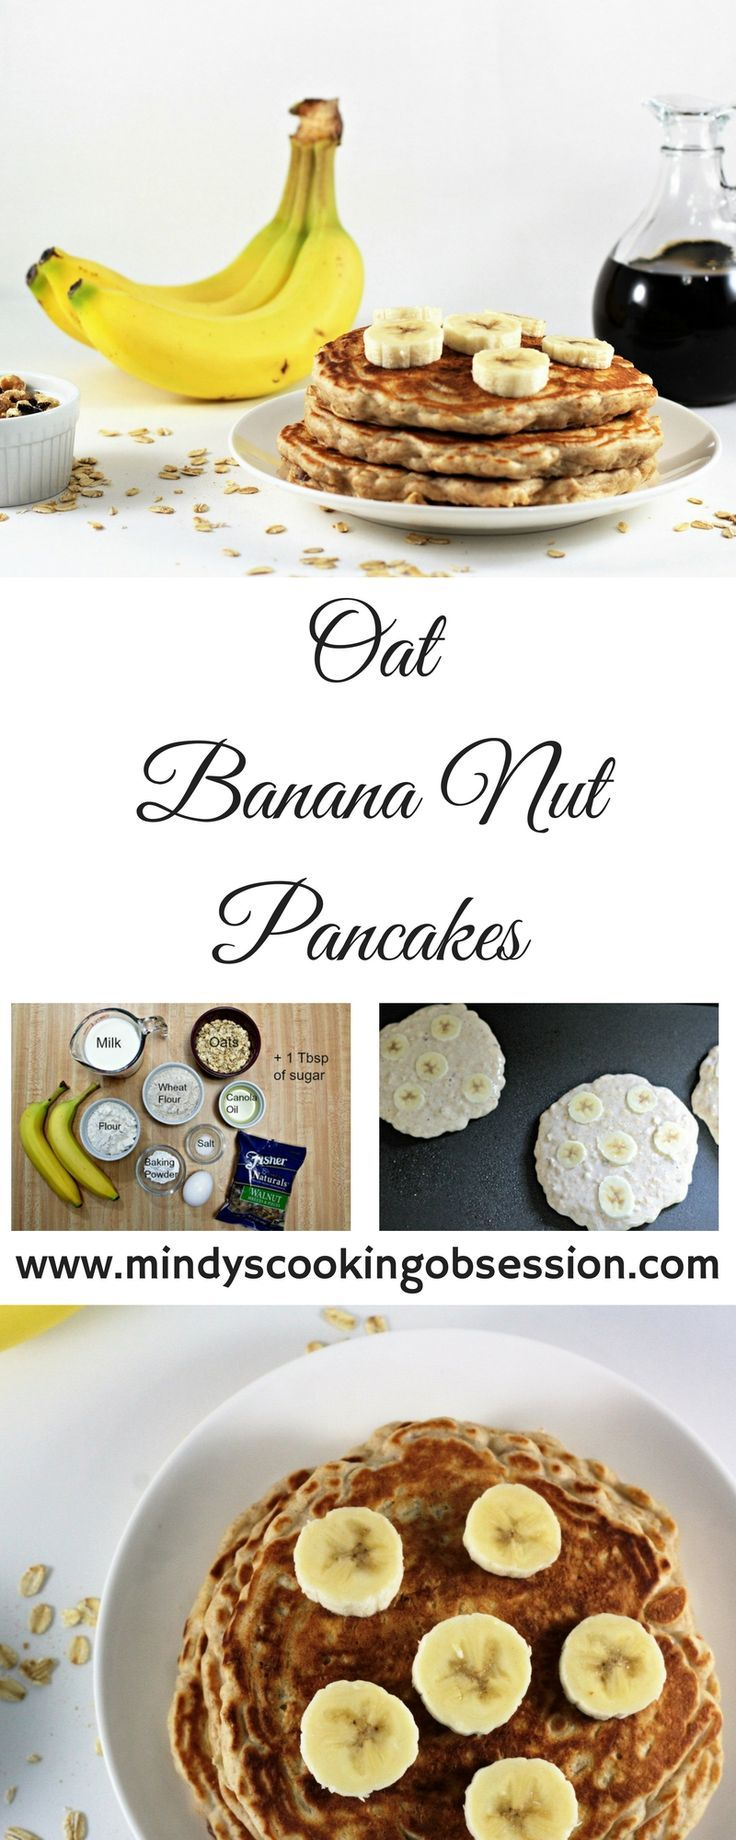 Oat Banana Nut Pancakes adds oats, wheat flour, bananas and walnuts to traditional pancake batter to make a heartier and healthier version of pancakes.